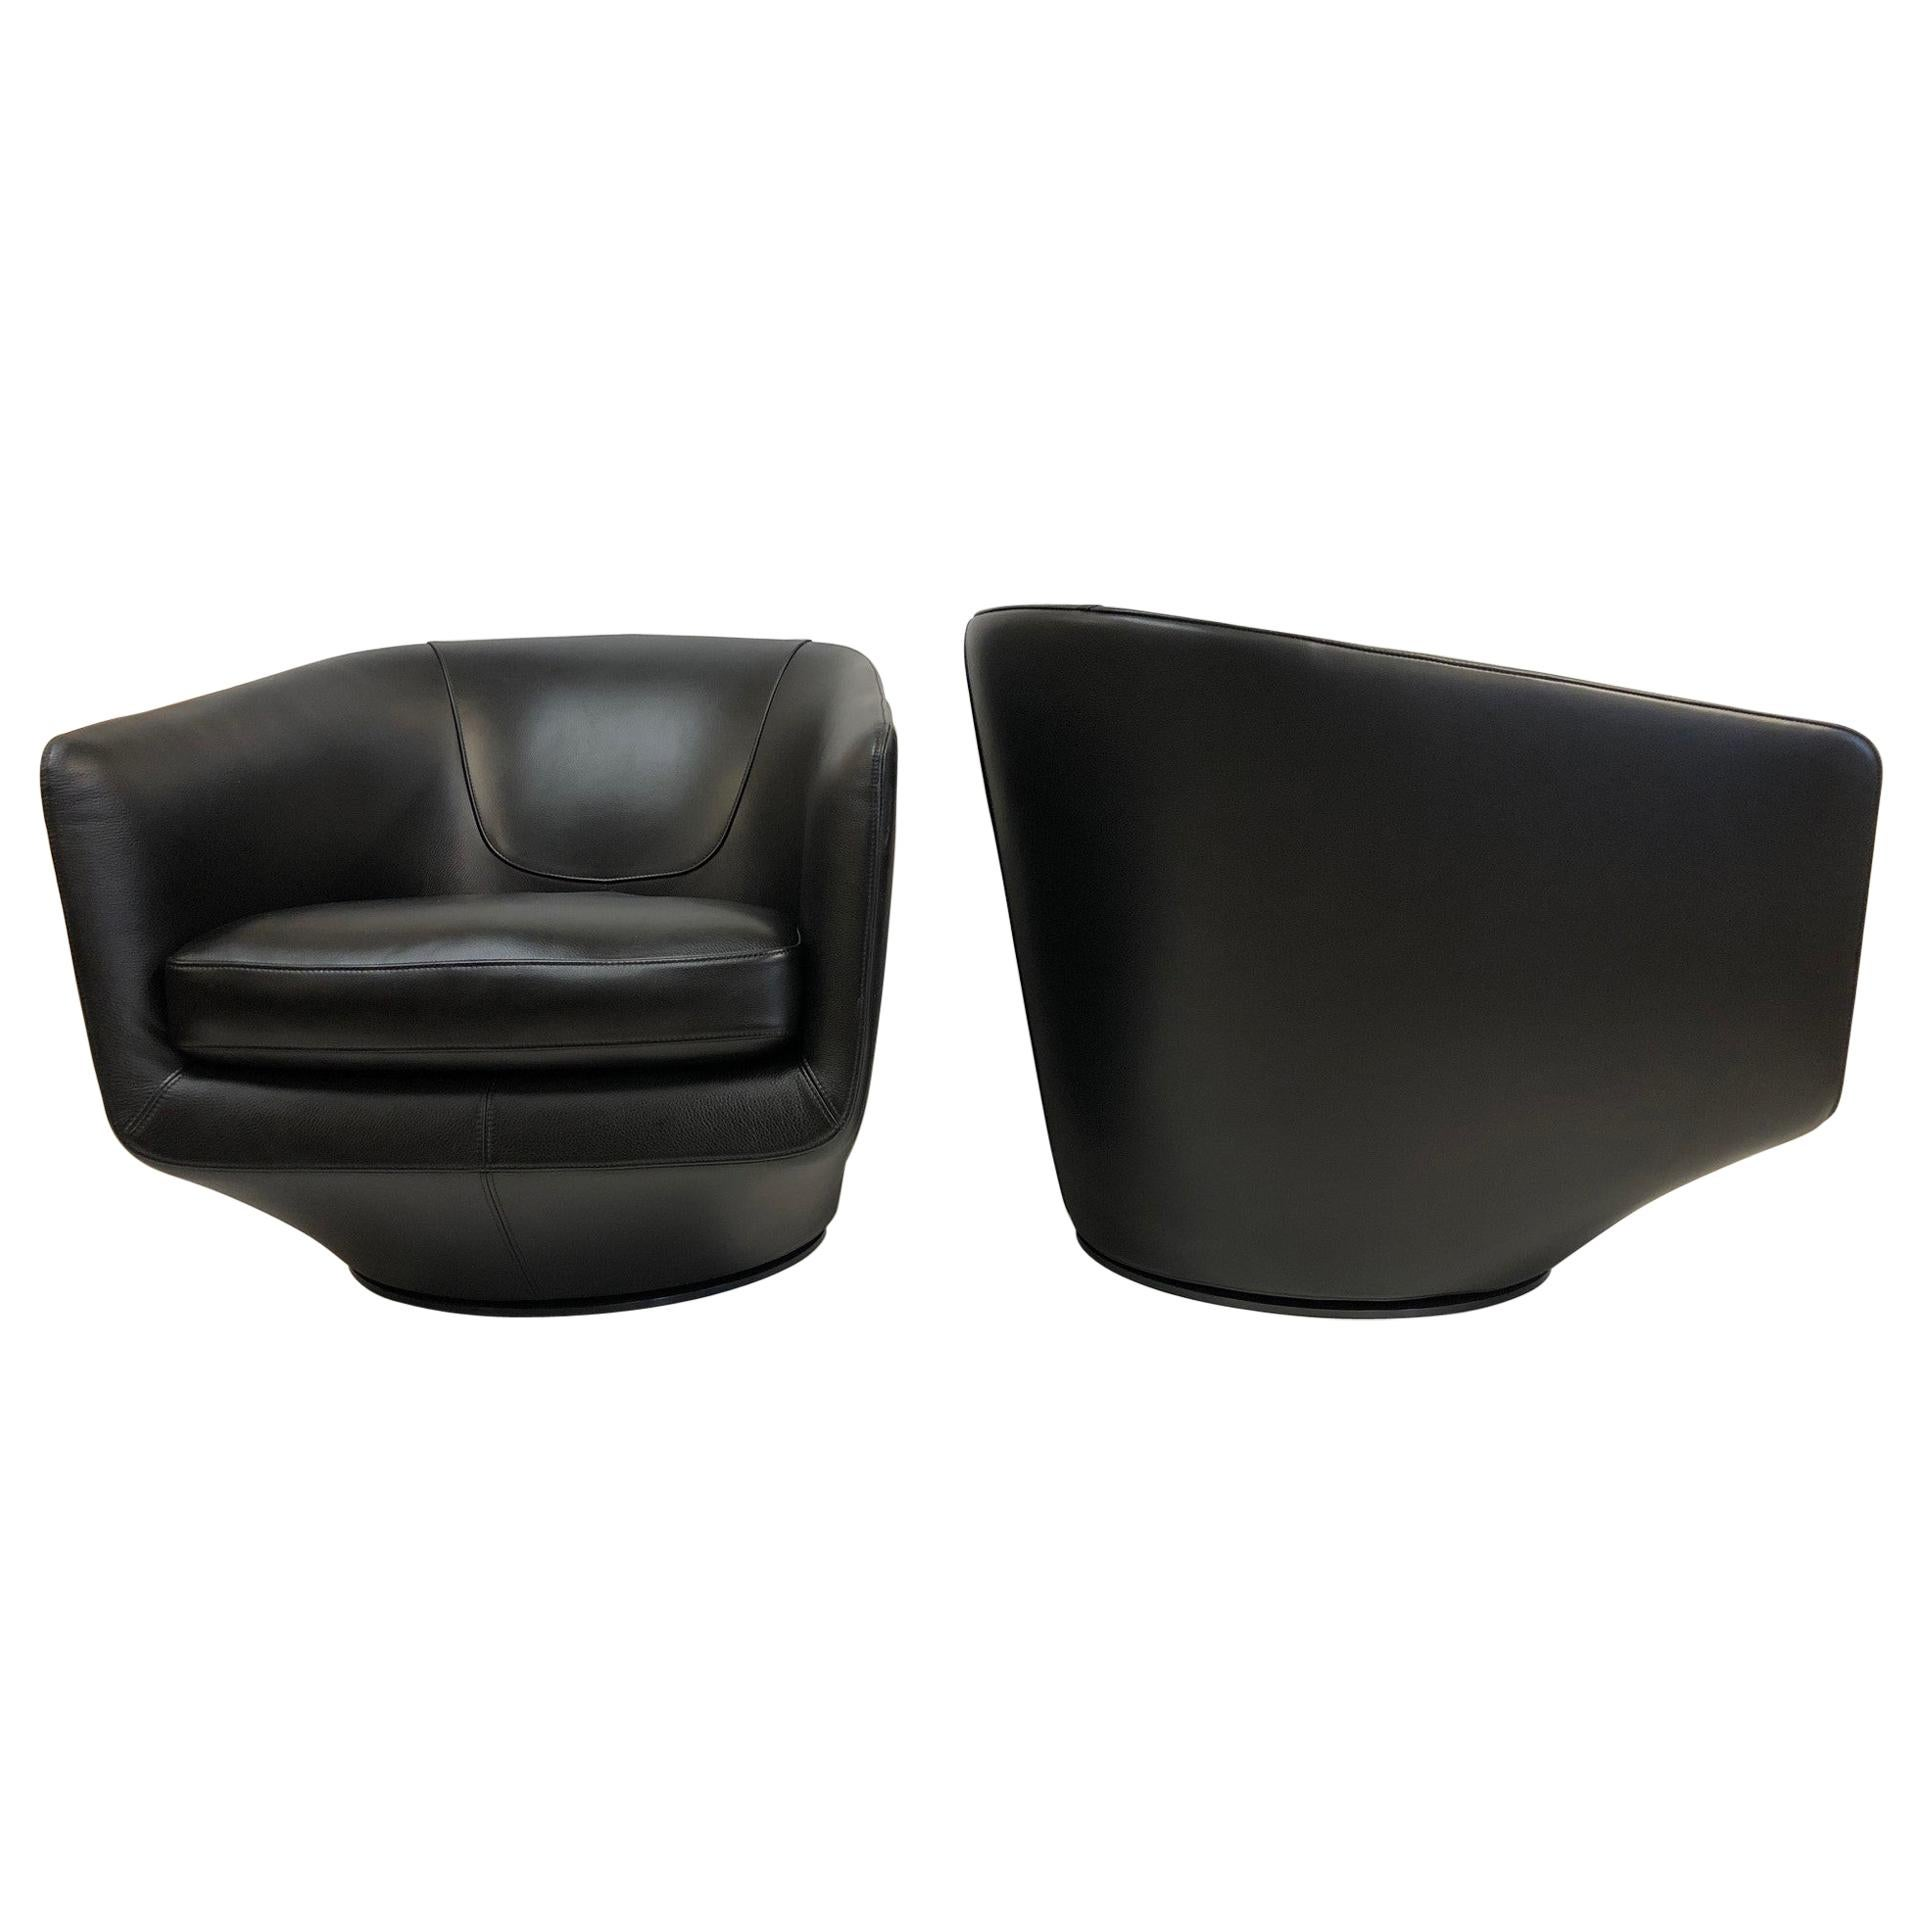 Pair of Leather Swivel Lounge Chairs by Bensen